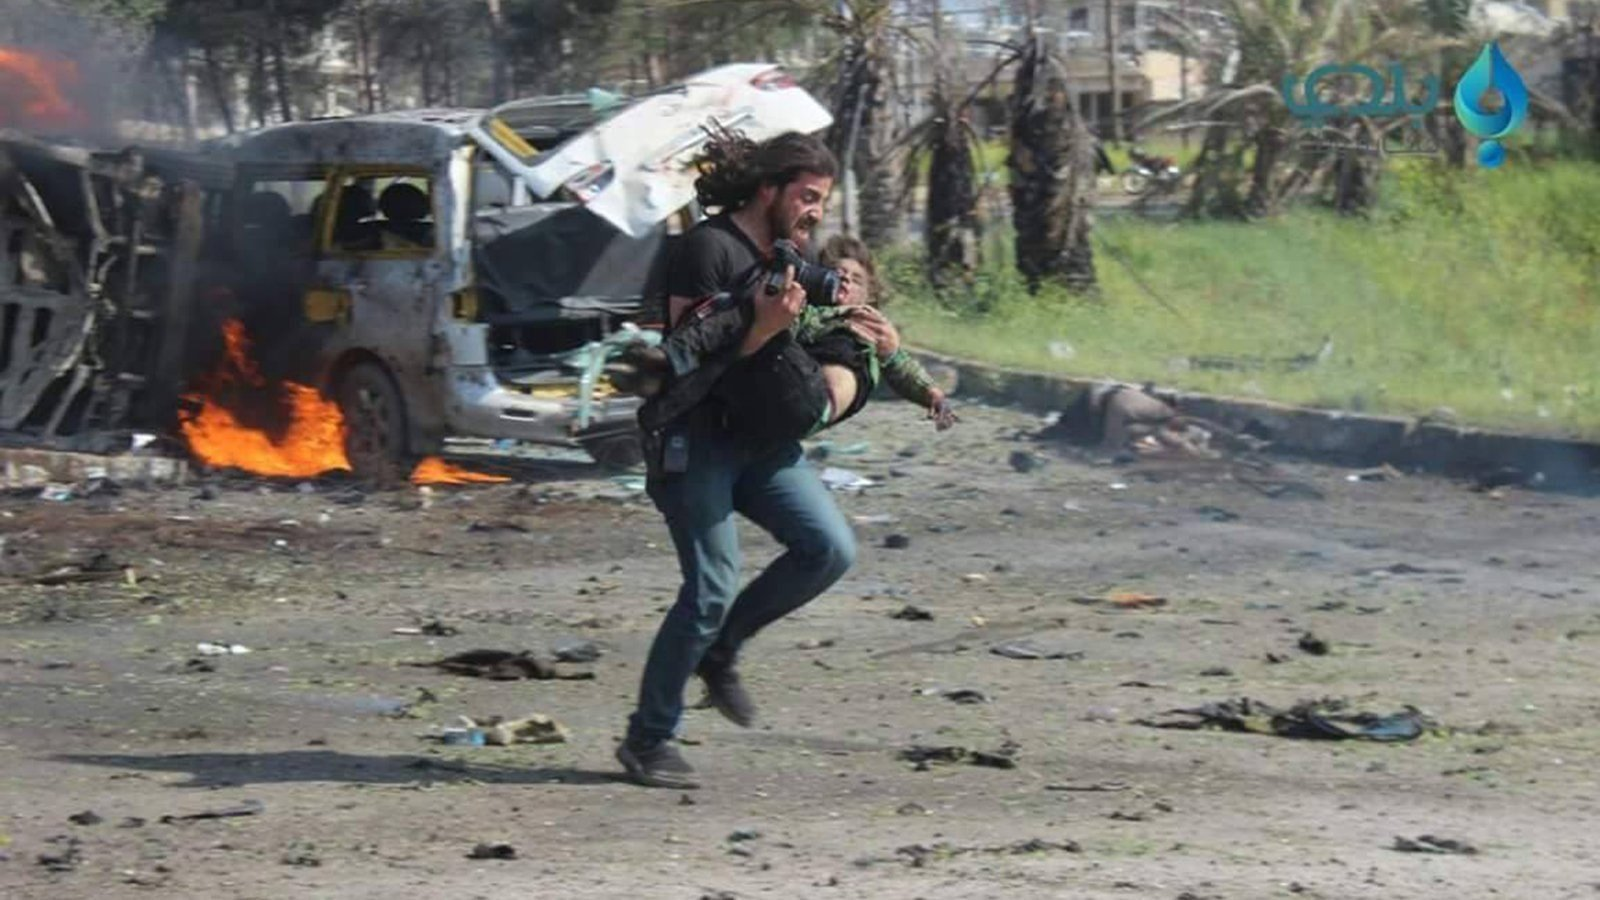 The Syria photographer who put down his camera to save lives